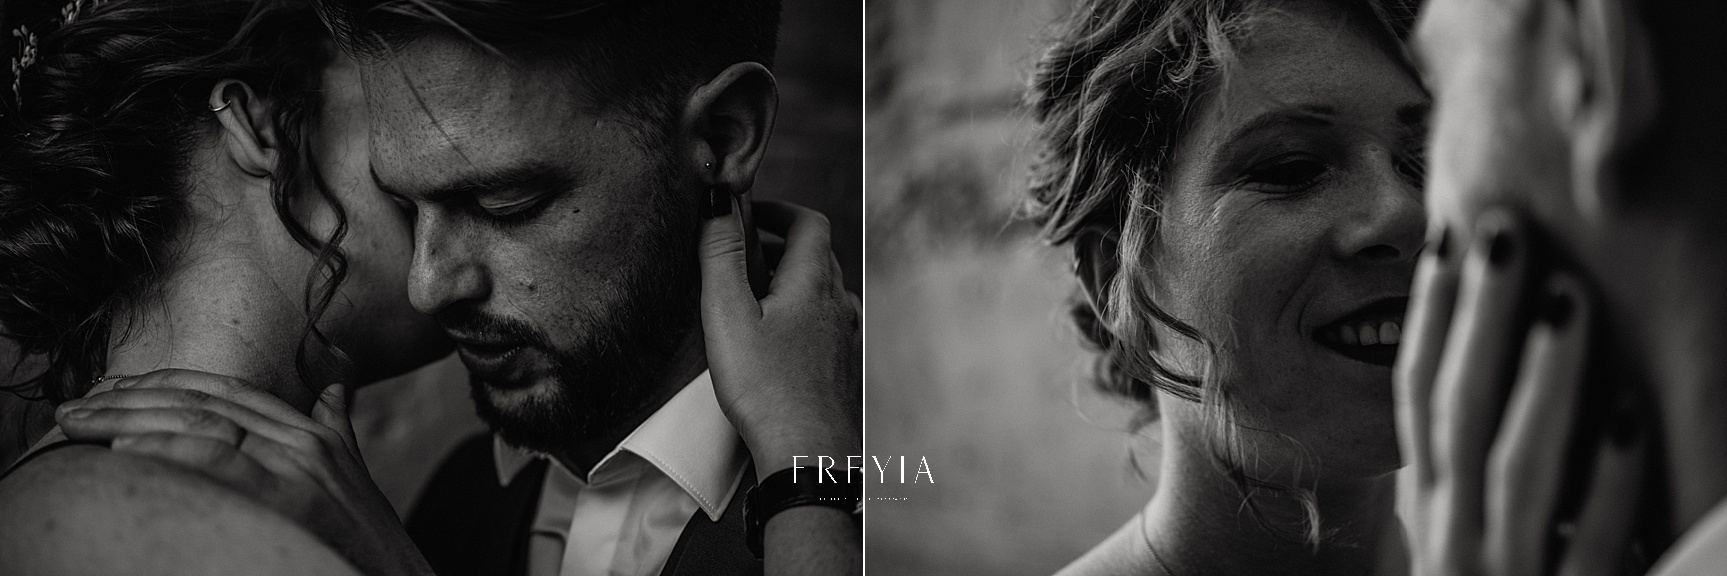 P + F |  mariage reportage alternatif moody intime vintage naturel boho boheme |  PHOTOGRAPHE mariage PARIS france destination  | FREYIA photography_-267.jpg